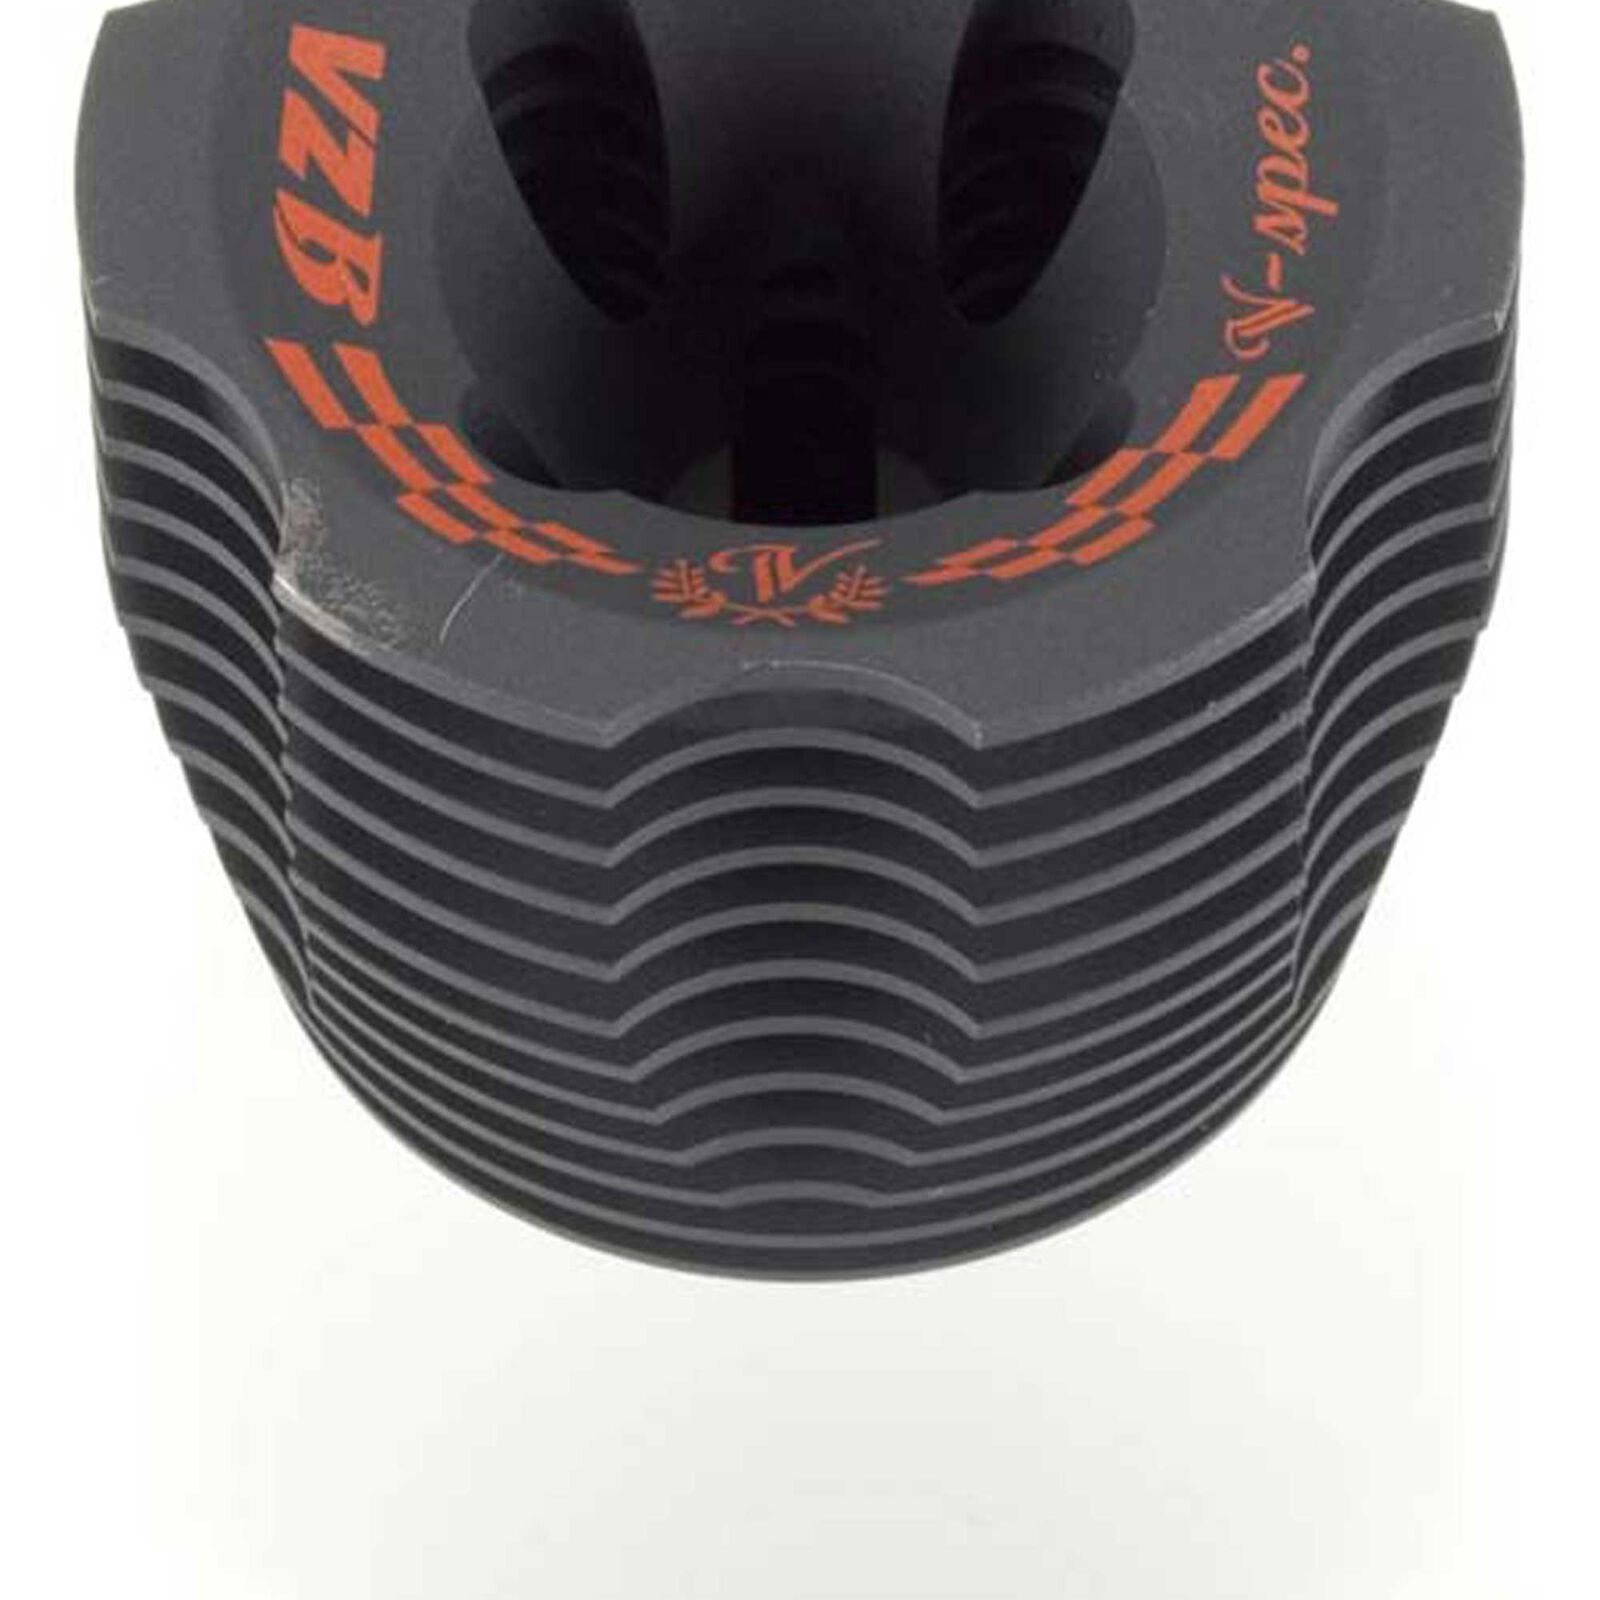 Outer Head: Speed 21 V-Spec